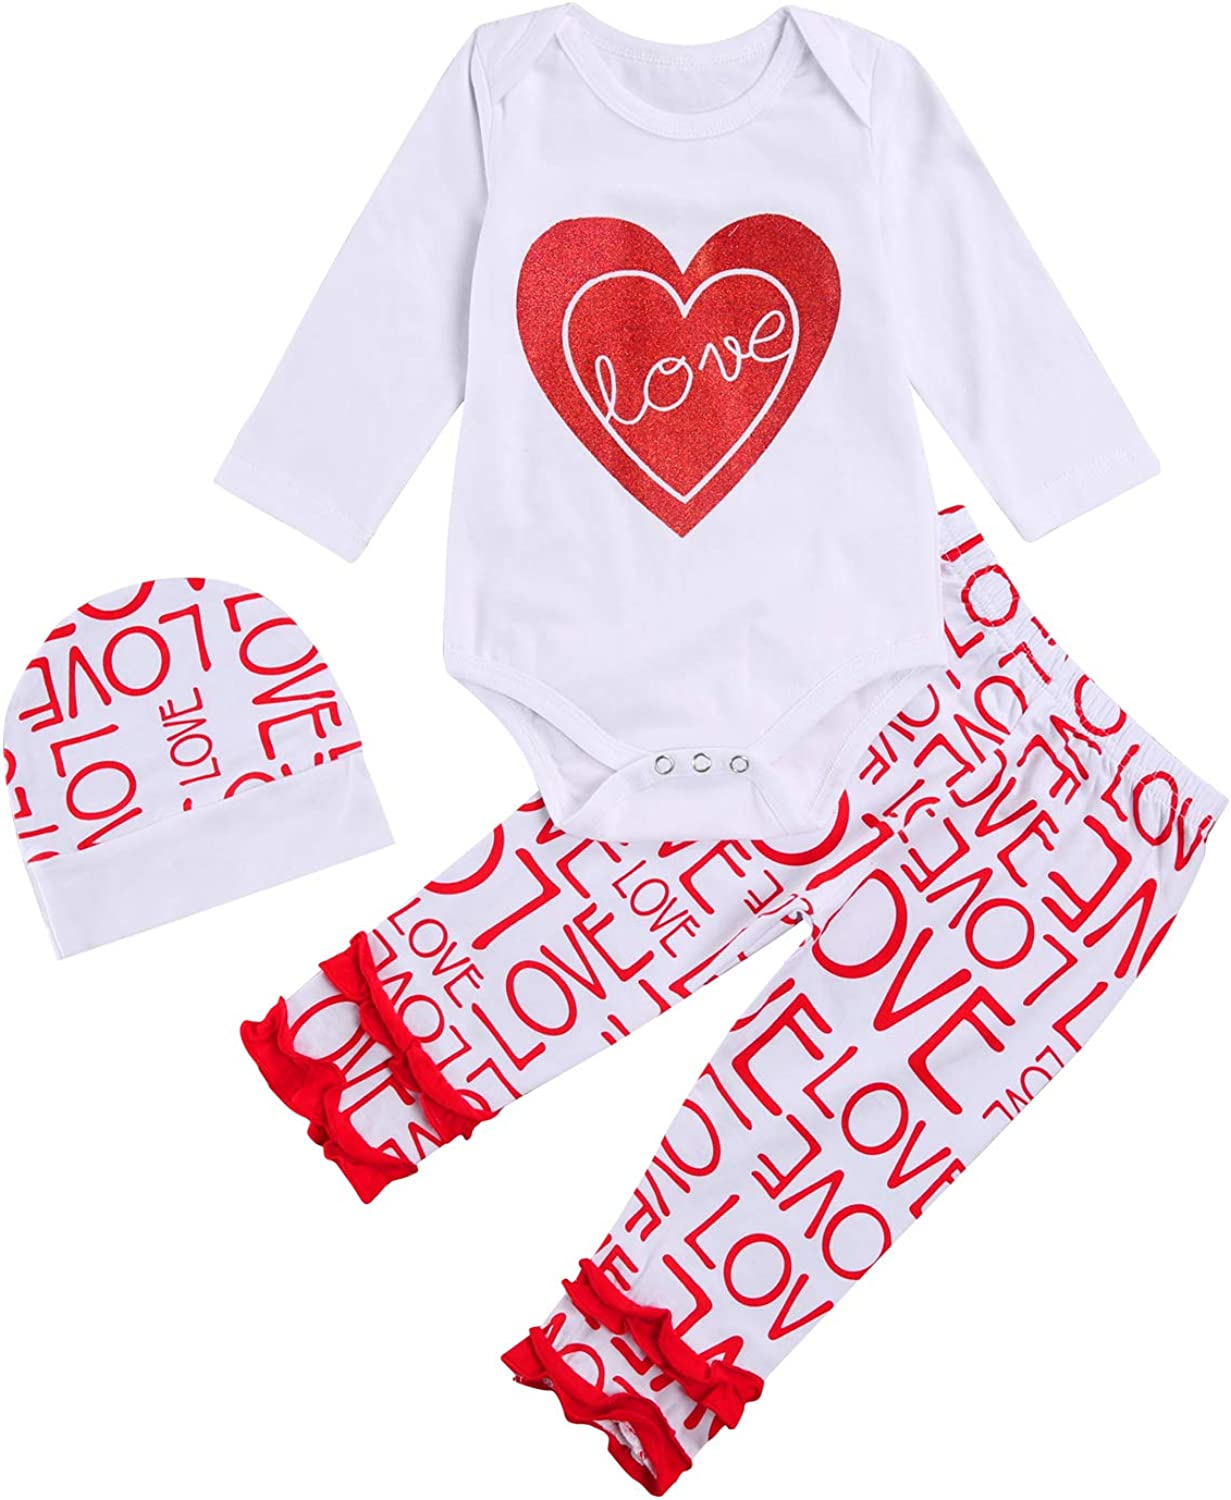 Baby Girl Boy Valentine's Day Outfits Valentine's Day Romper Top Pants My First Valentine's Day Clothes